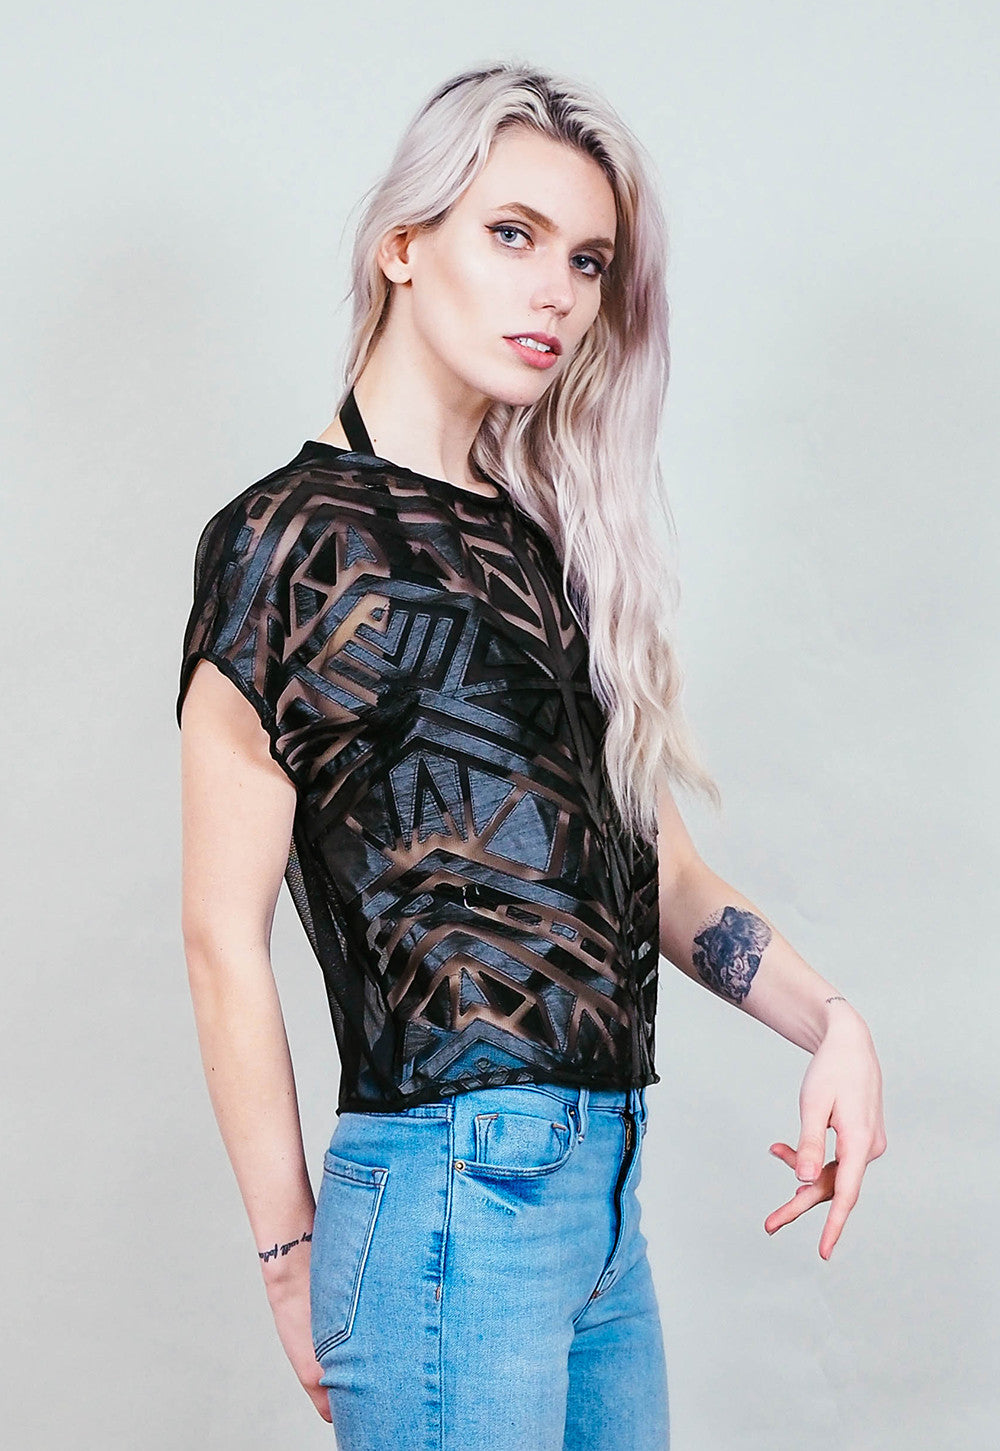 40671f0e4c747c Cross My Heart - sheer mesh crop top with faux leather panels - cruelty free